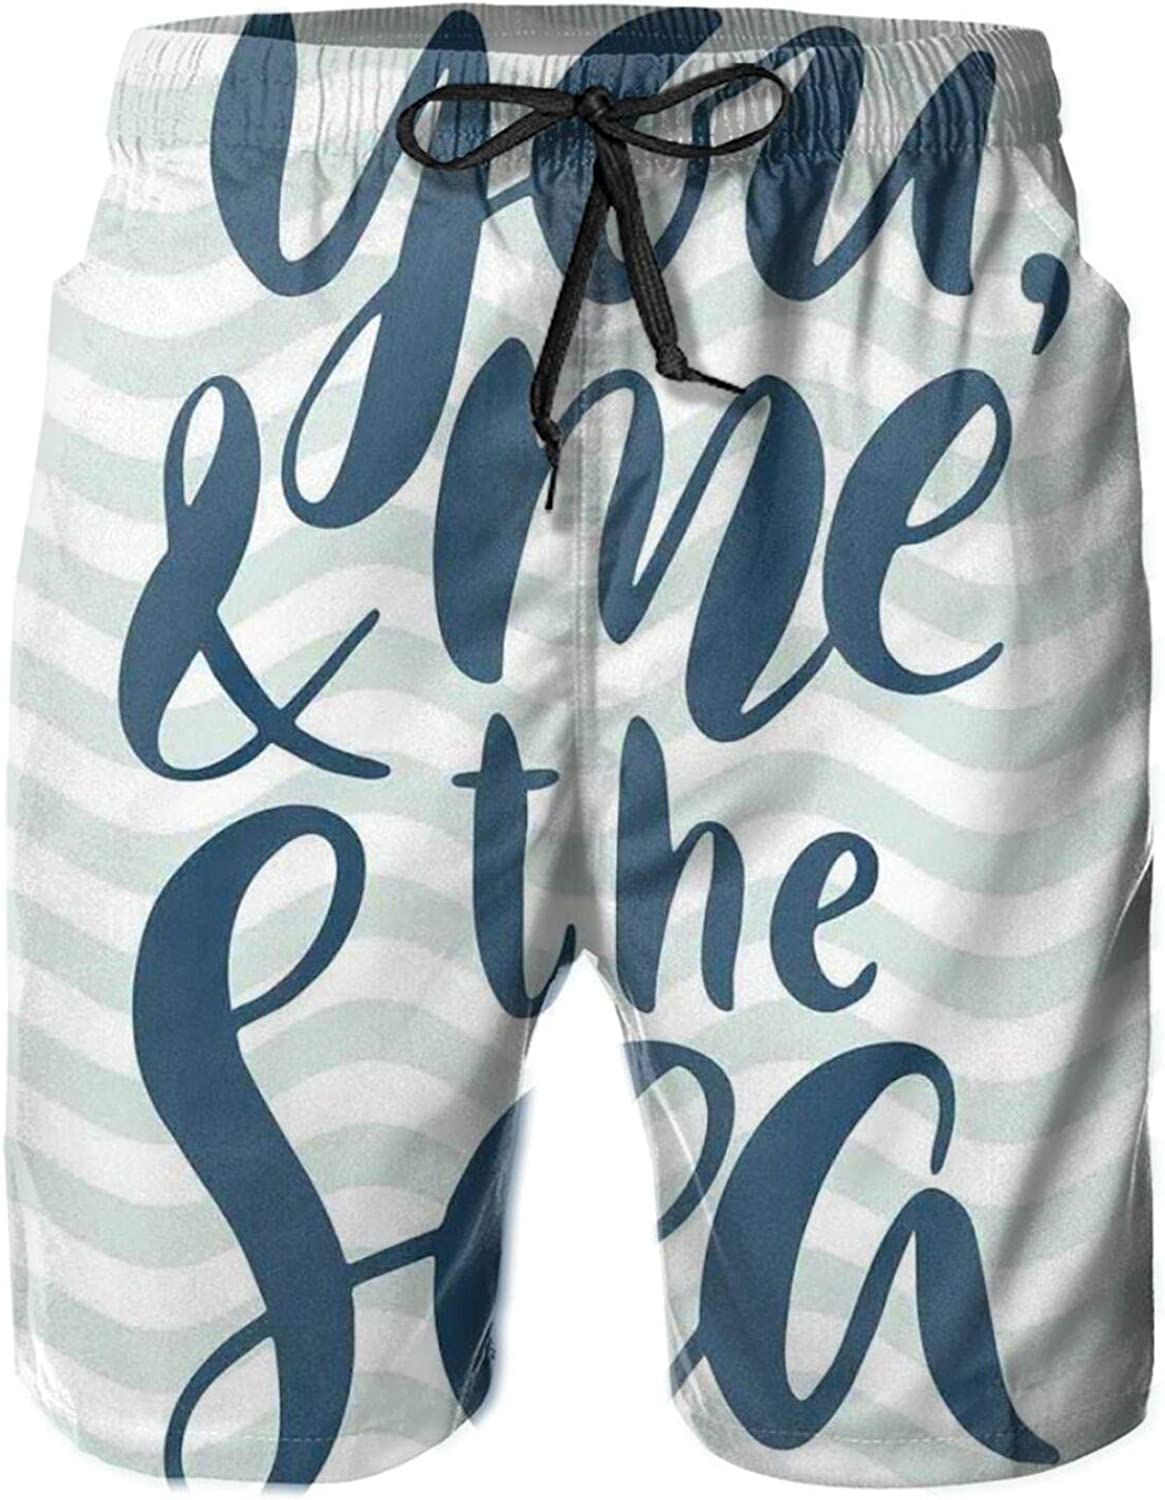 You Me and The Sea Text On Wavy Background Drawstring Waist Beach Shorts for Men Swim Trucks Board Shorts with Mesh Lining,L